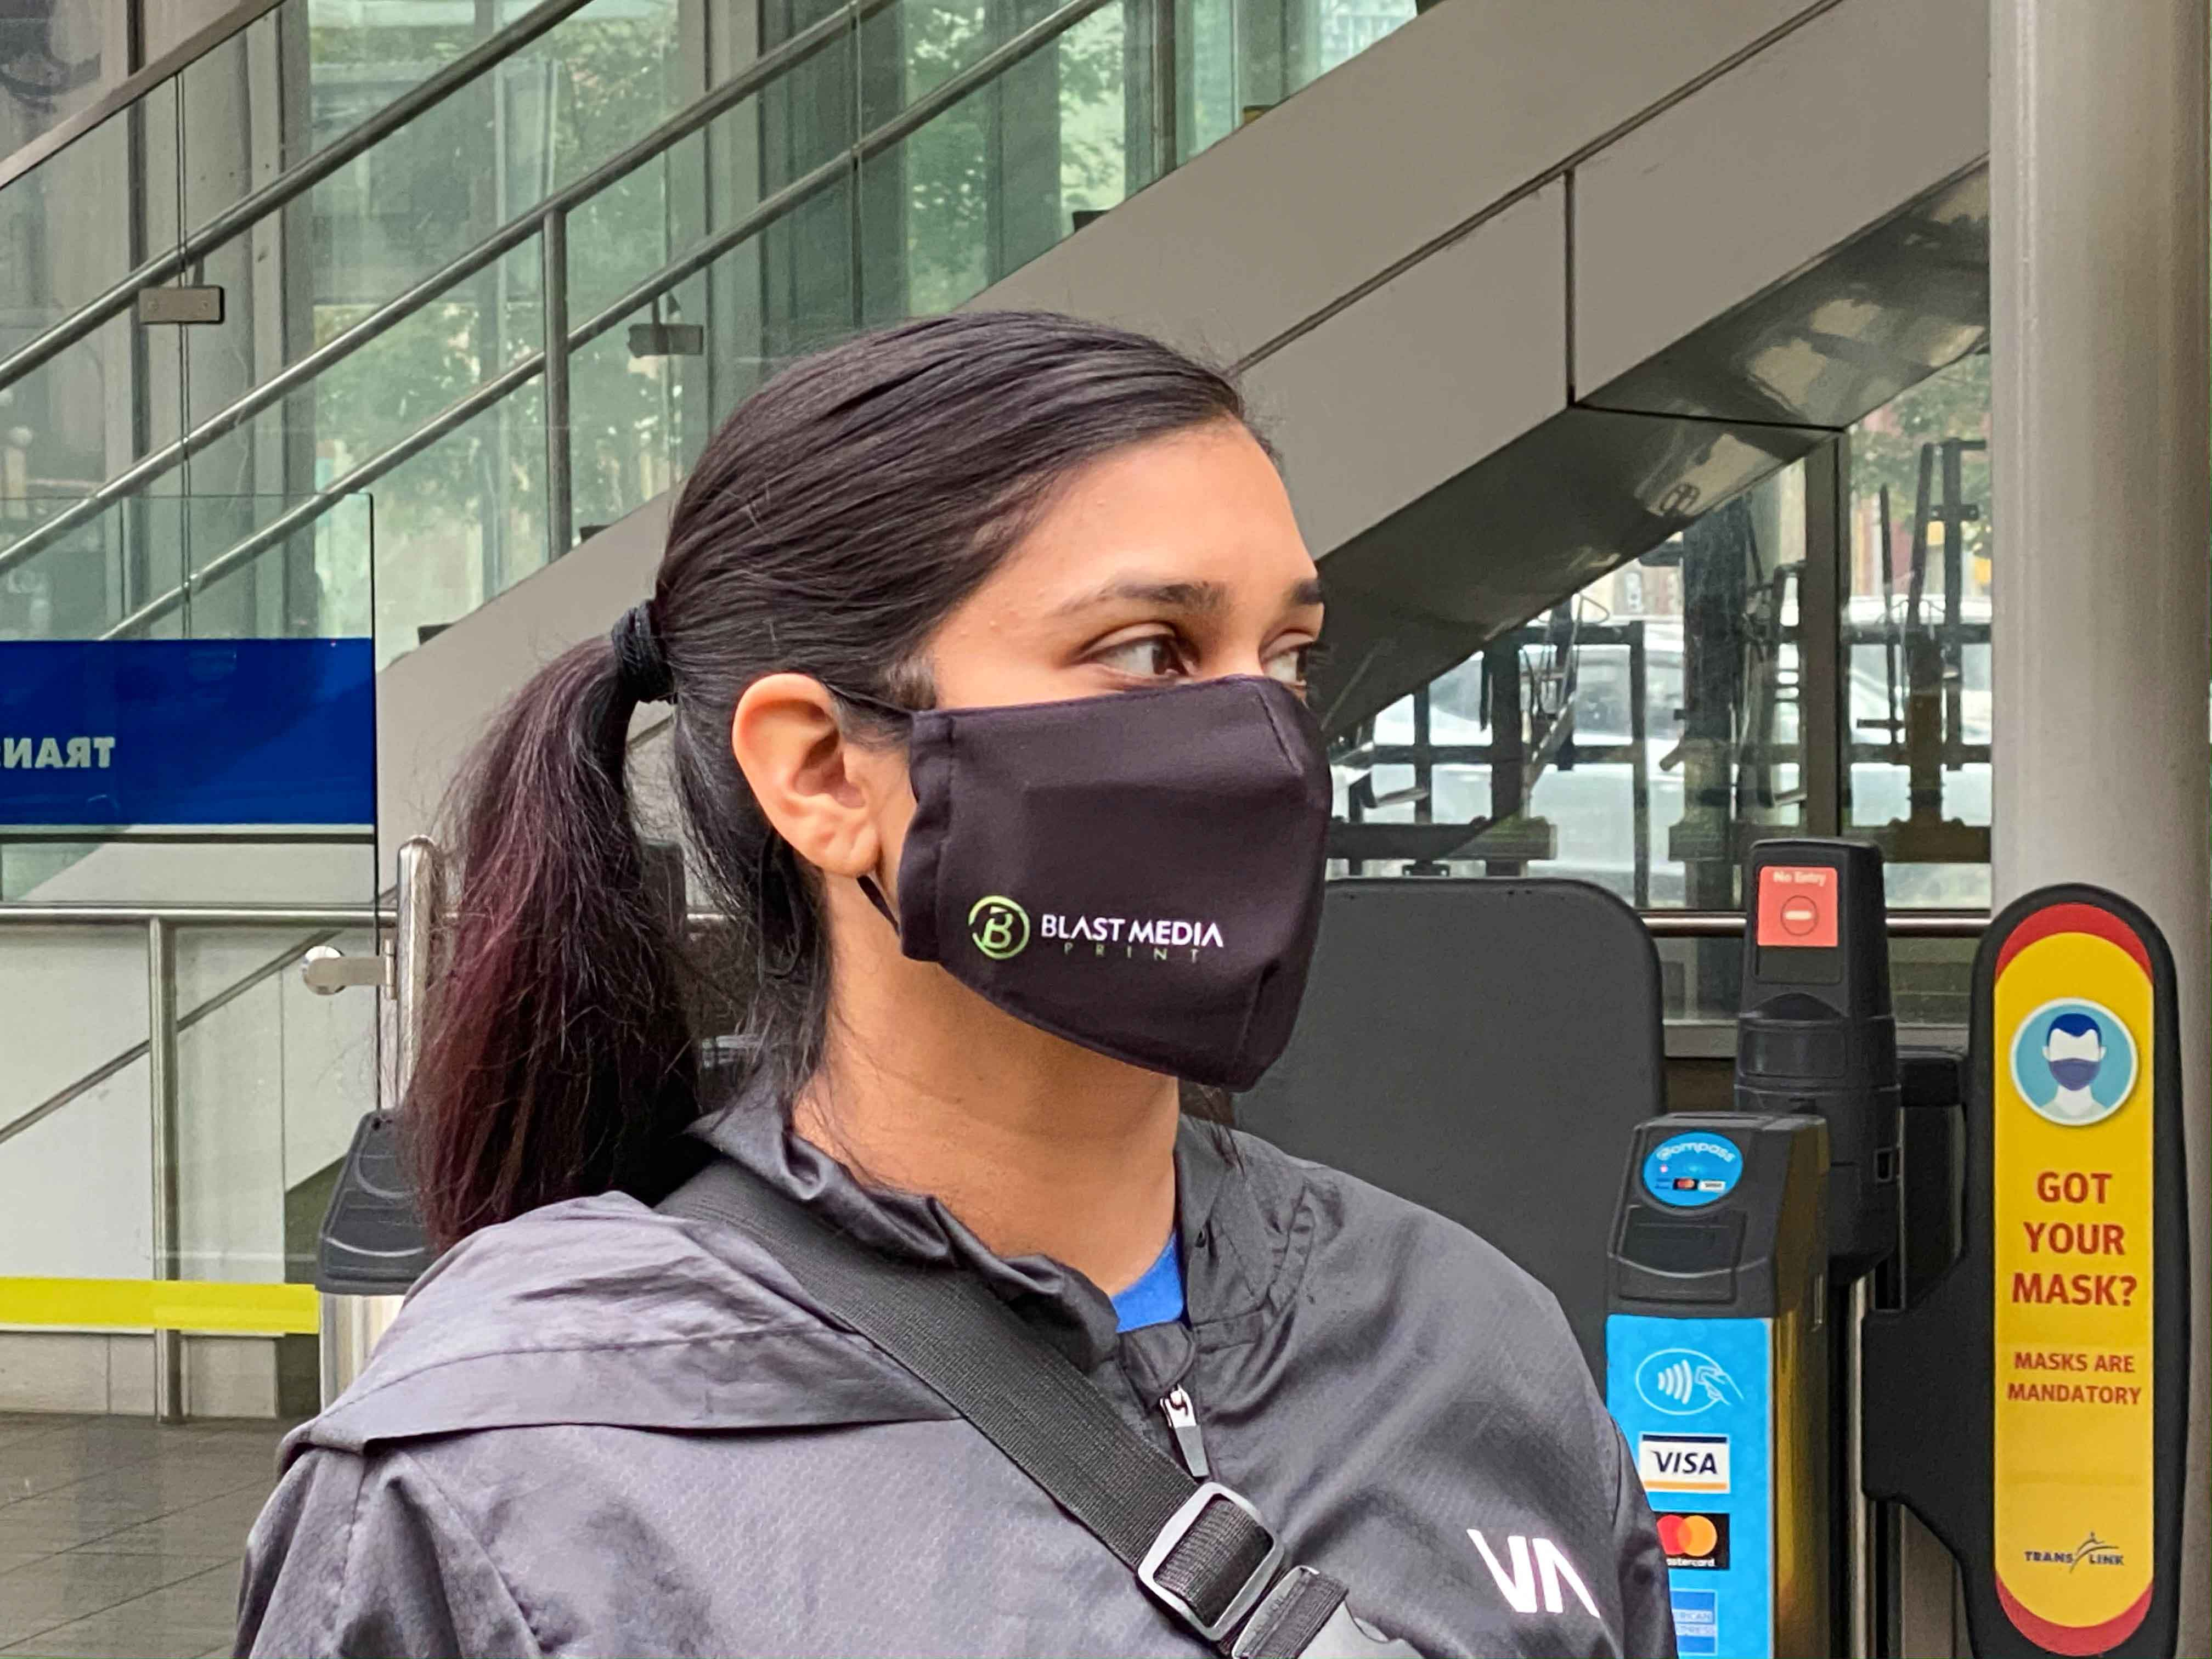 Custom Printed 3-Layer Washable Face Masks with Adjustable Ear Loops (includes 2.5 PM filter, Minimum Order of 30)